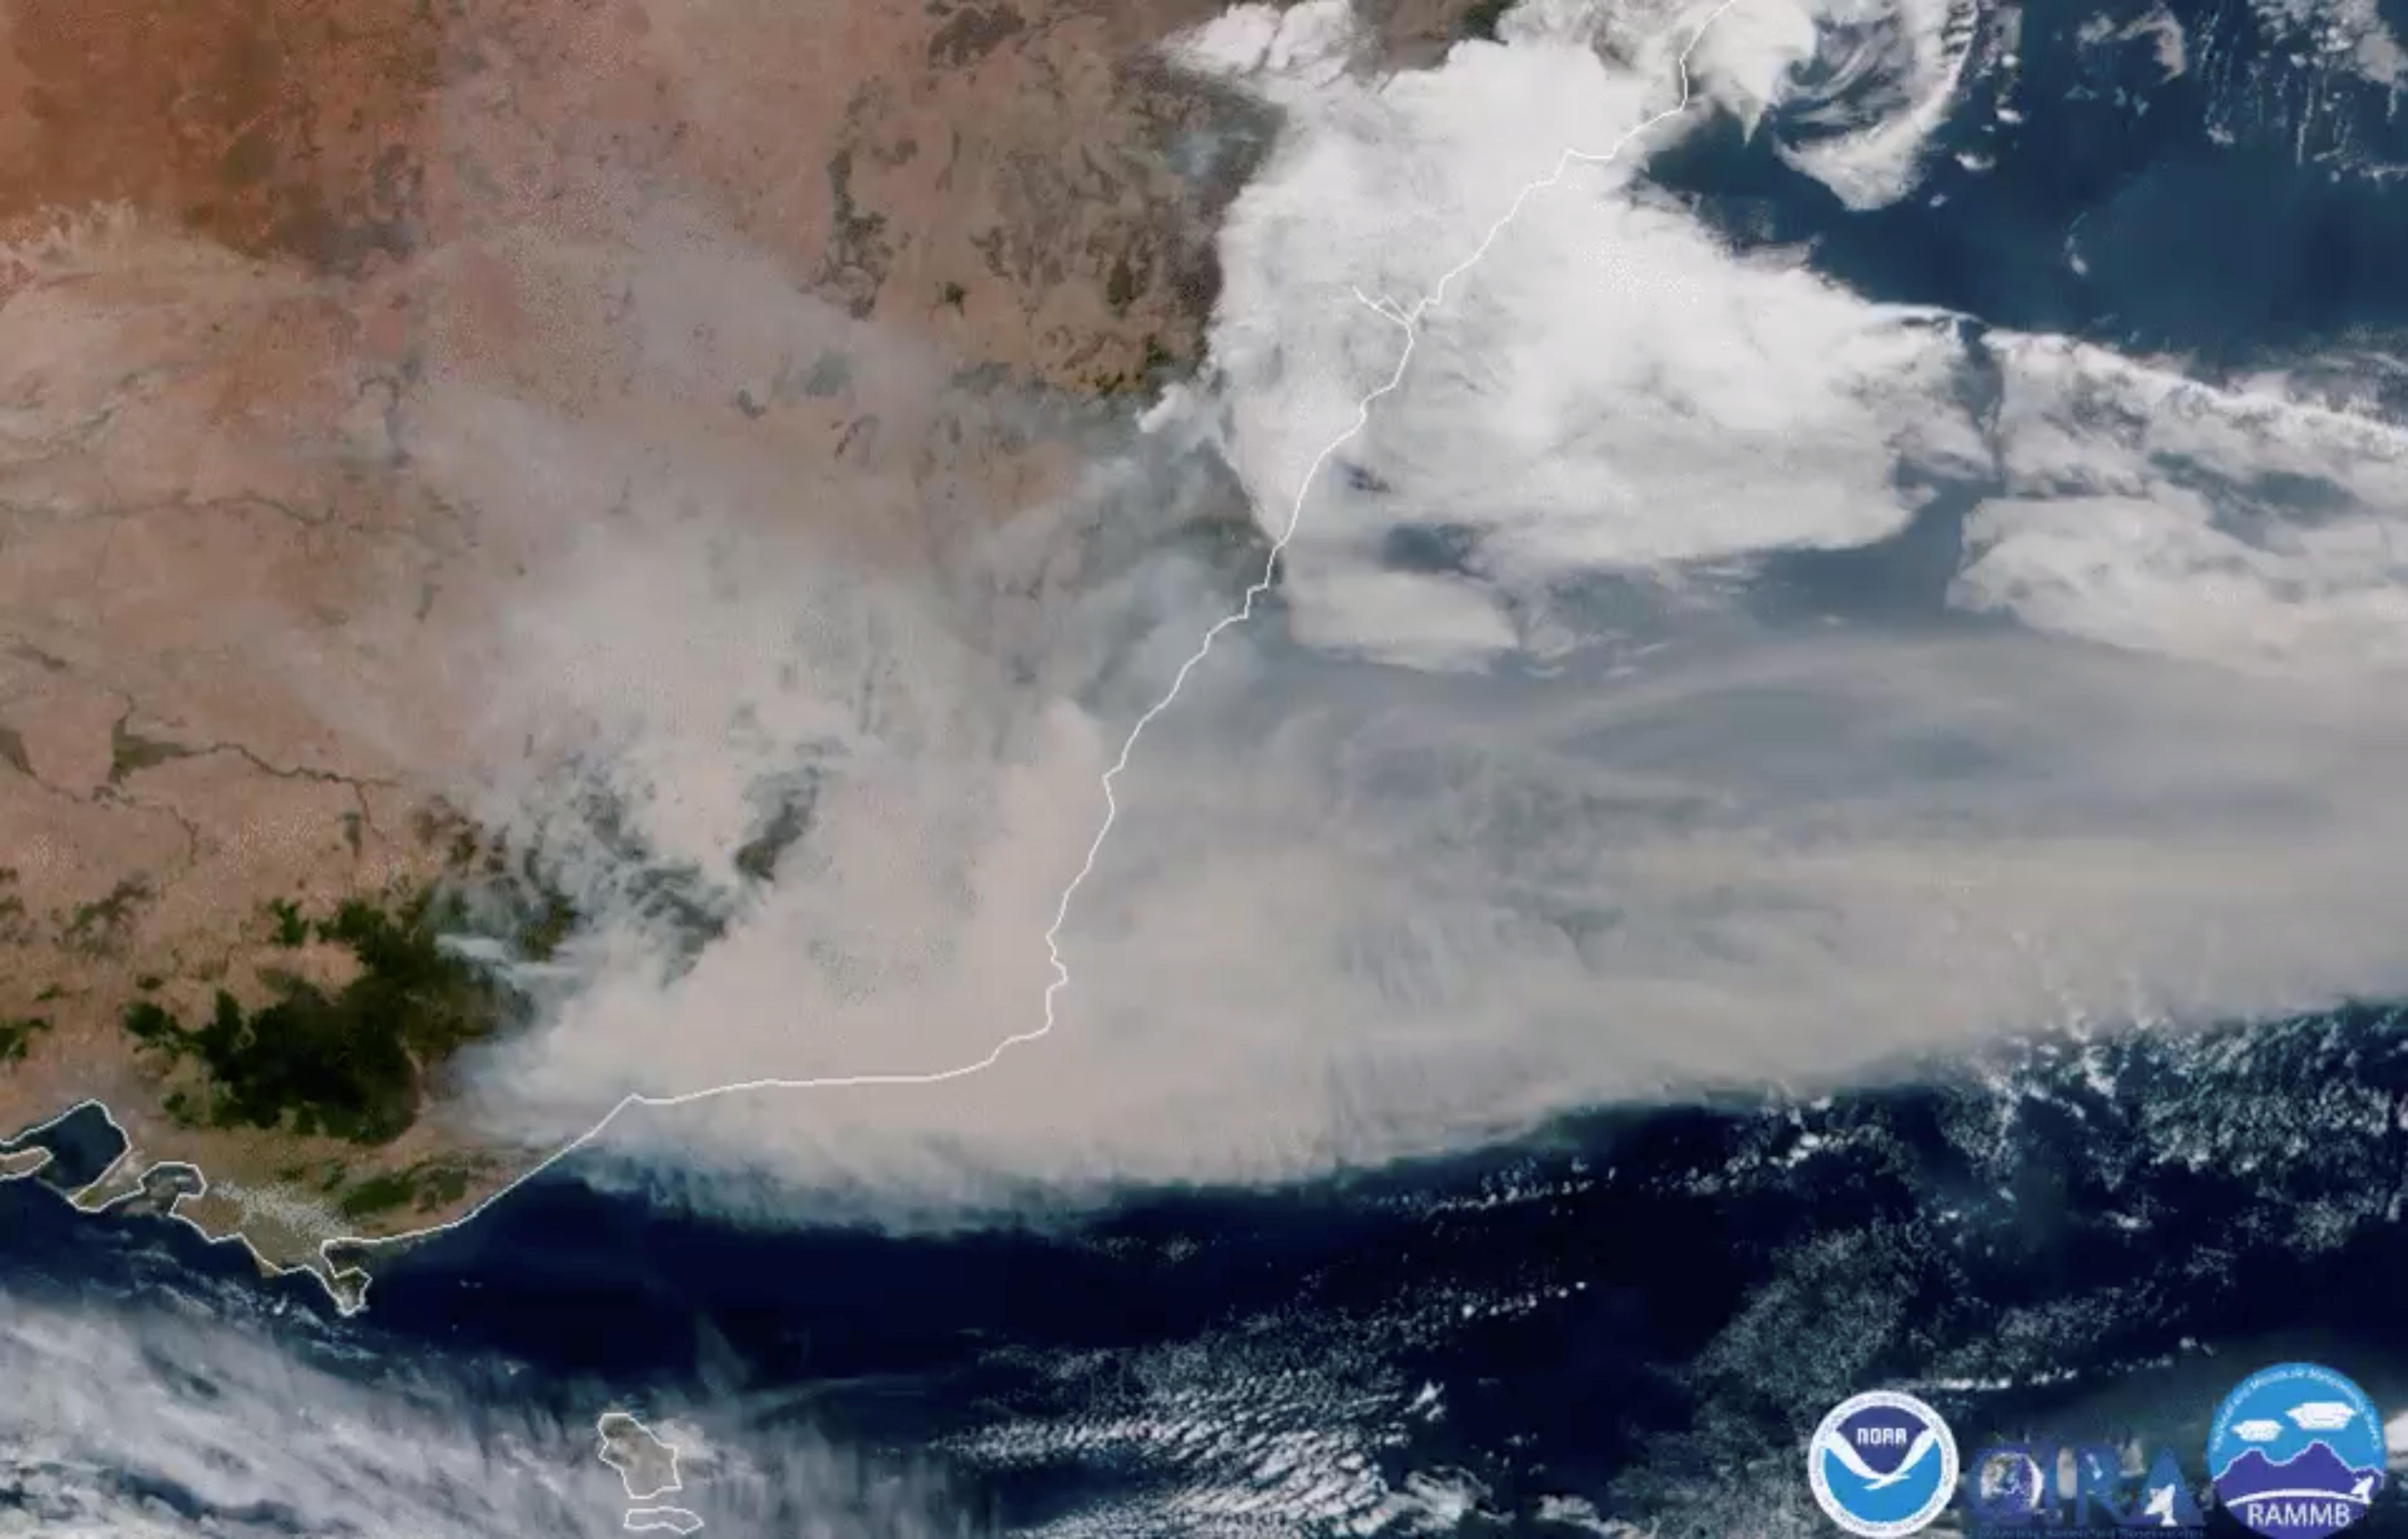 Thousands flee fires in Australia, navy helps evacuate the stranded